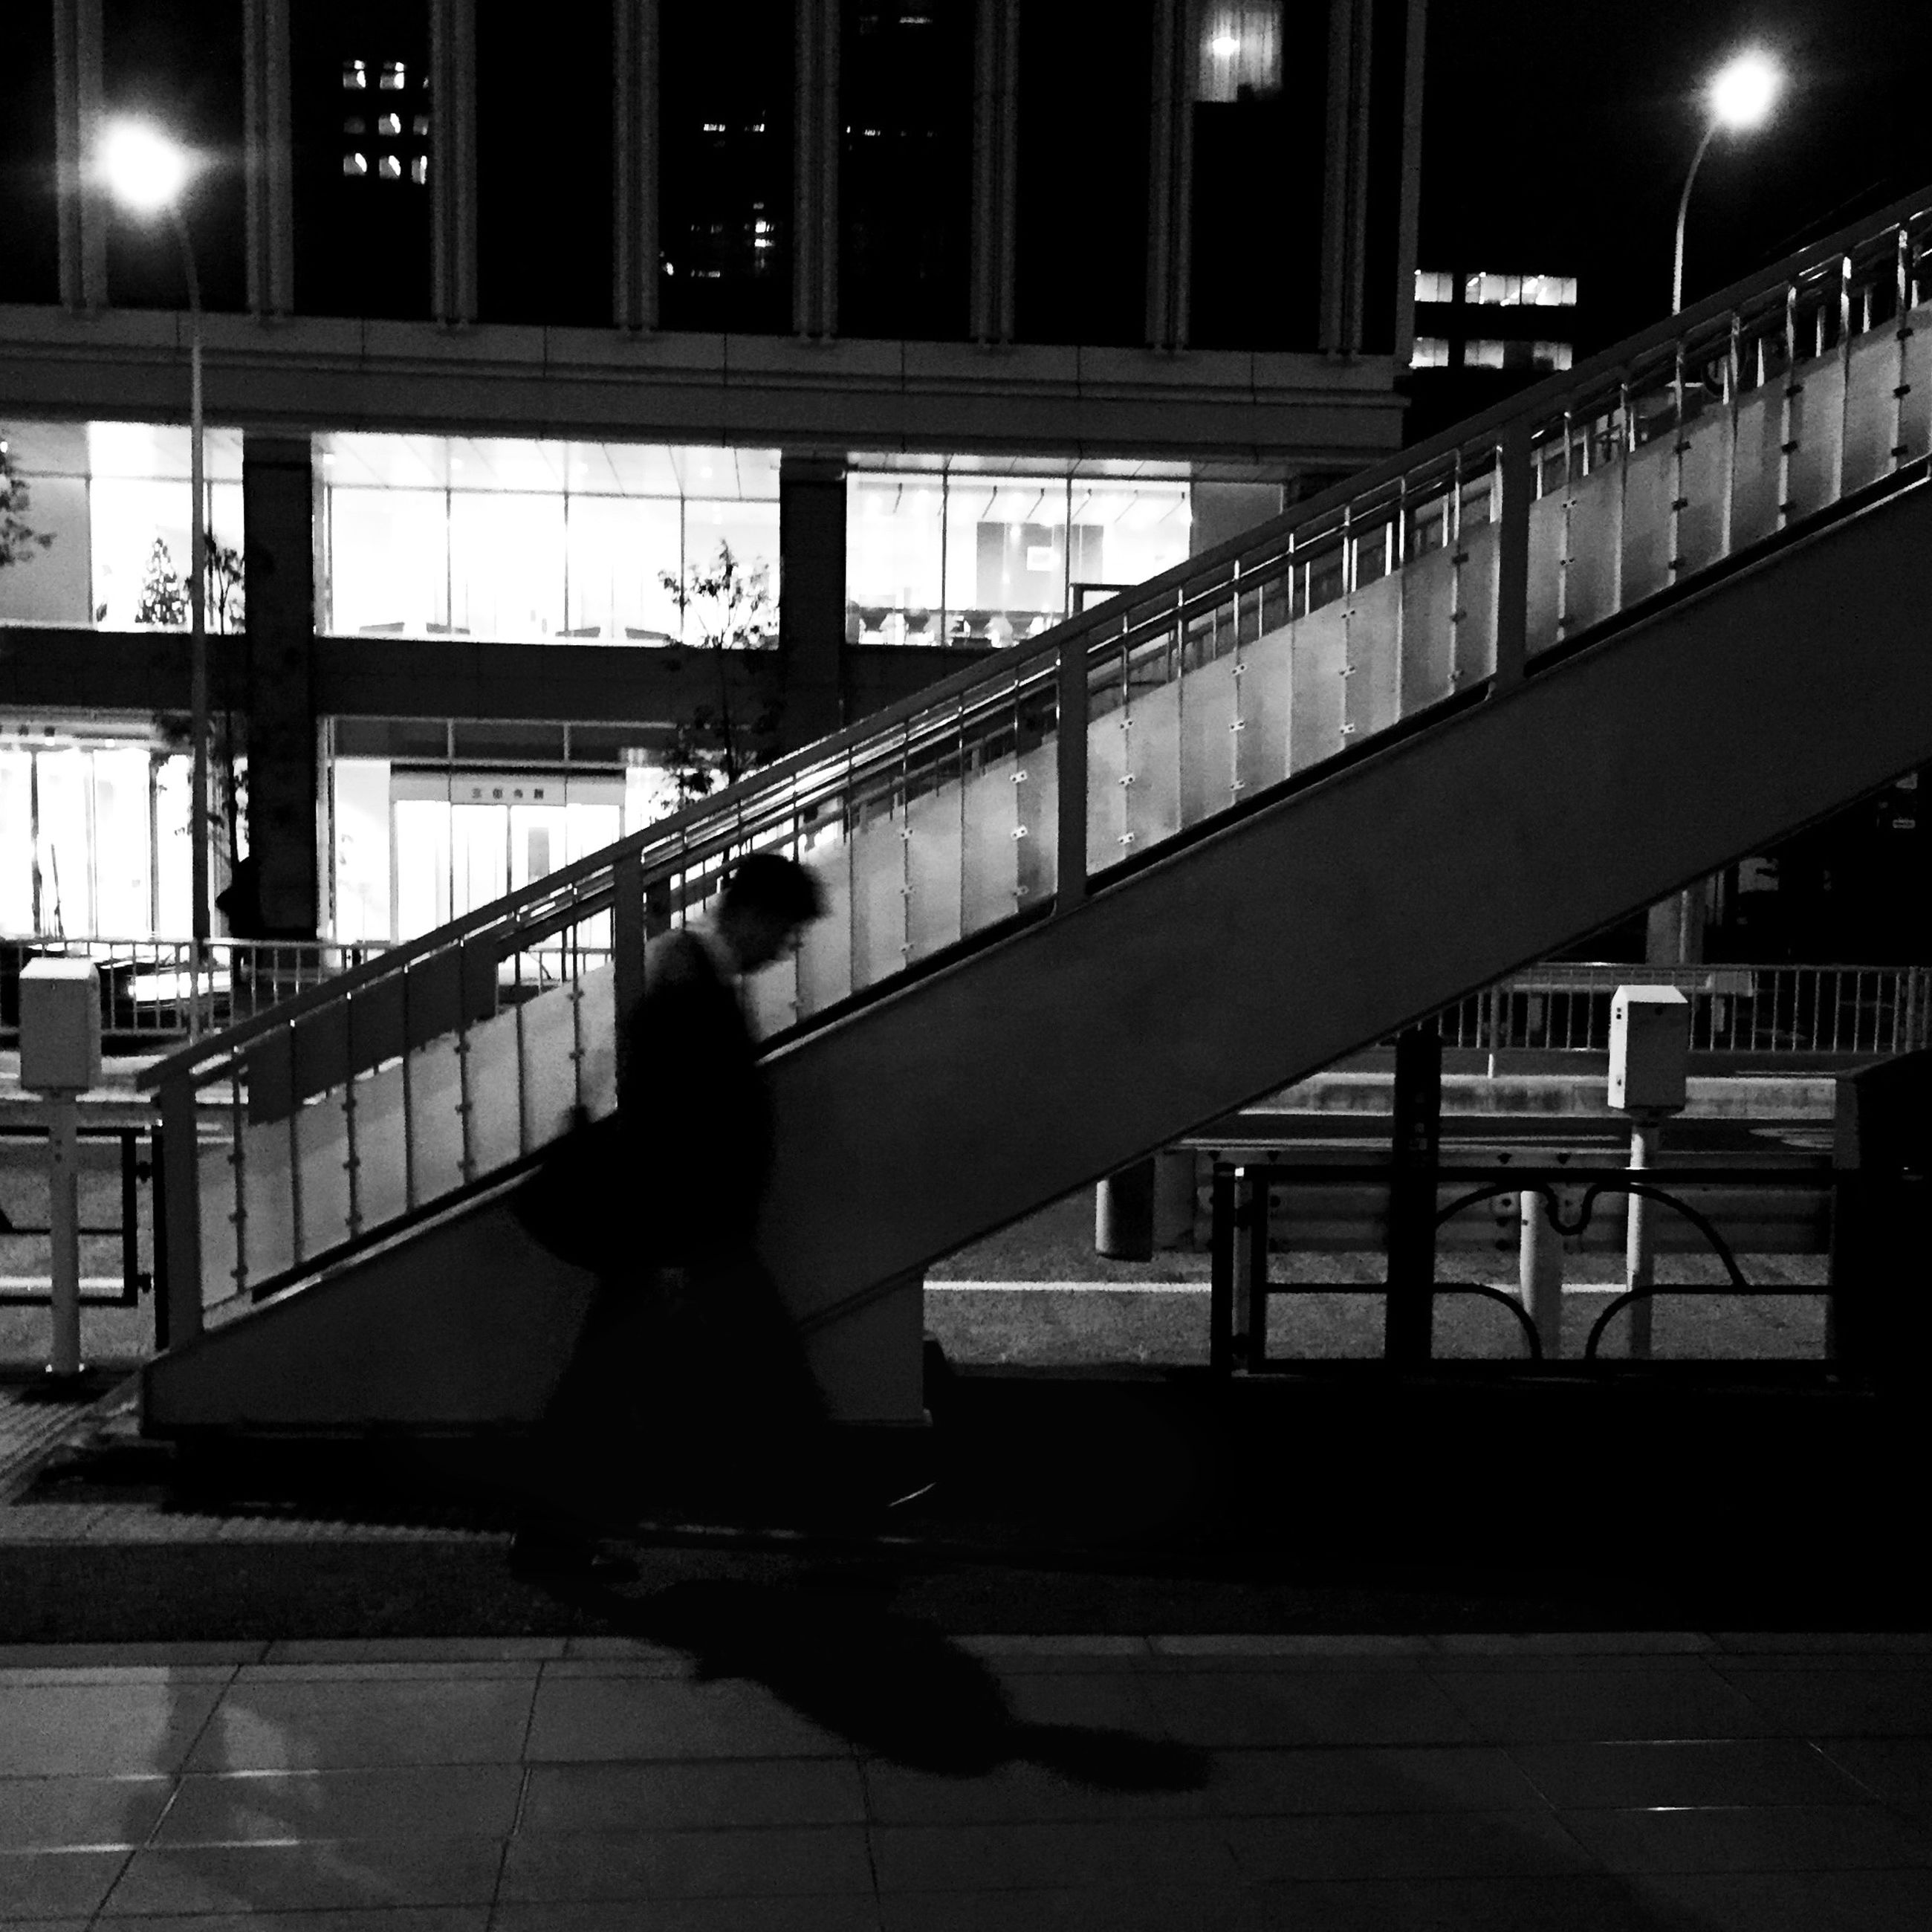 lifestyles, full length, illuminated, built structure, architecture, night, leisure activity, men, walking, building exterior, city life, city, standing, railroad station platform, person, casual clothing, rear view, railroad station